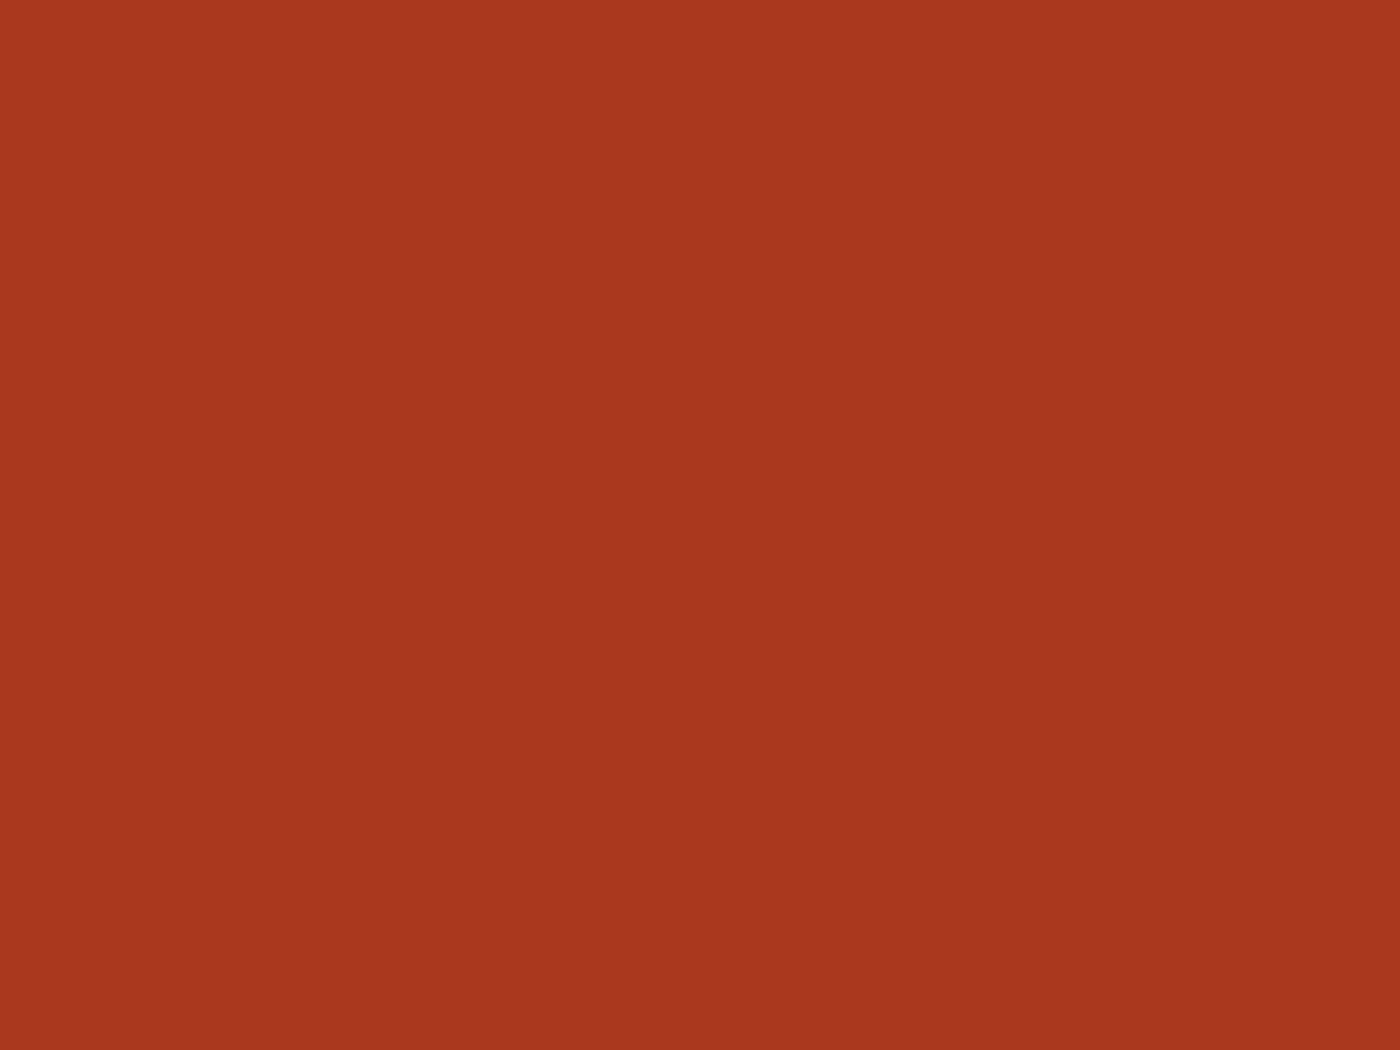 X Chinese Red Solid Color Background